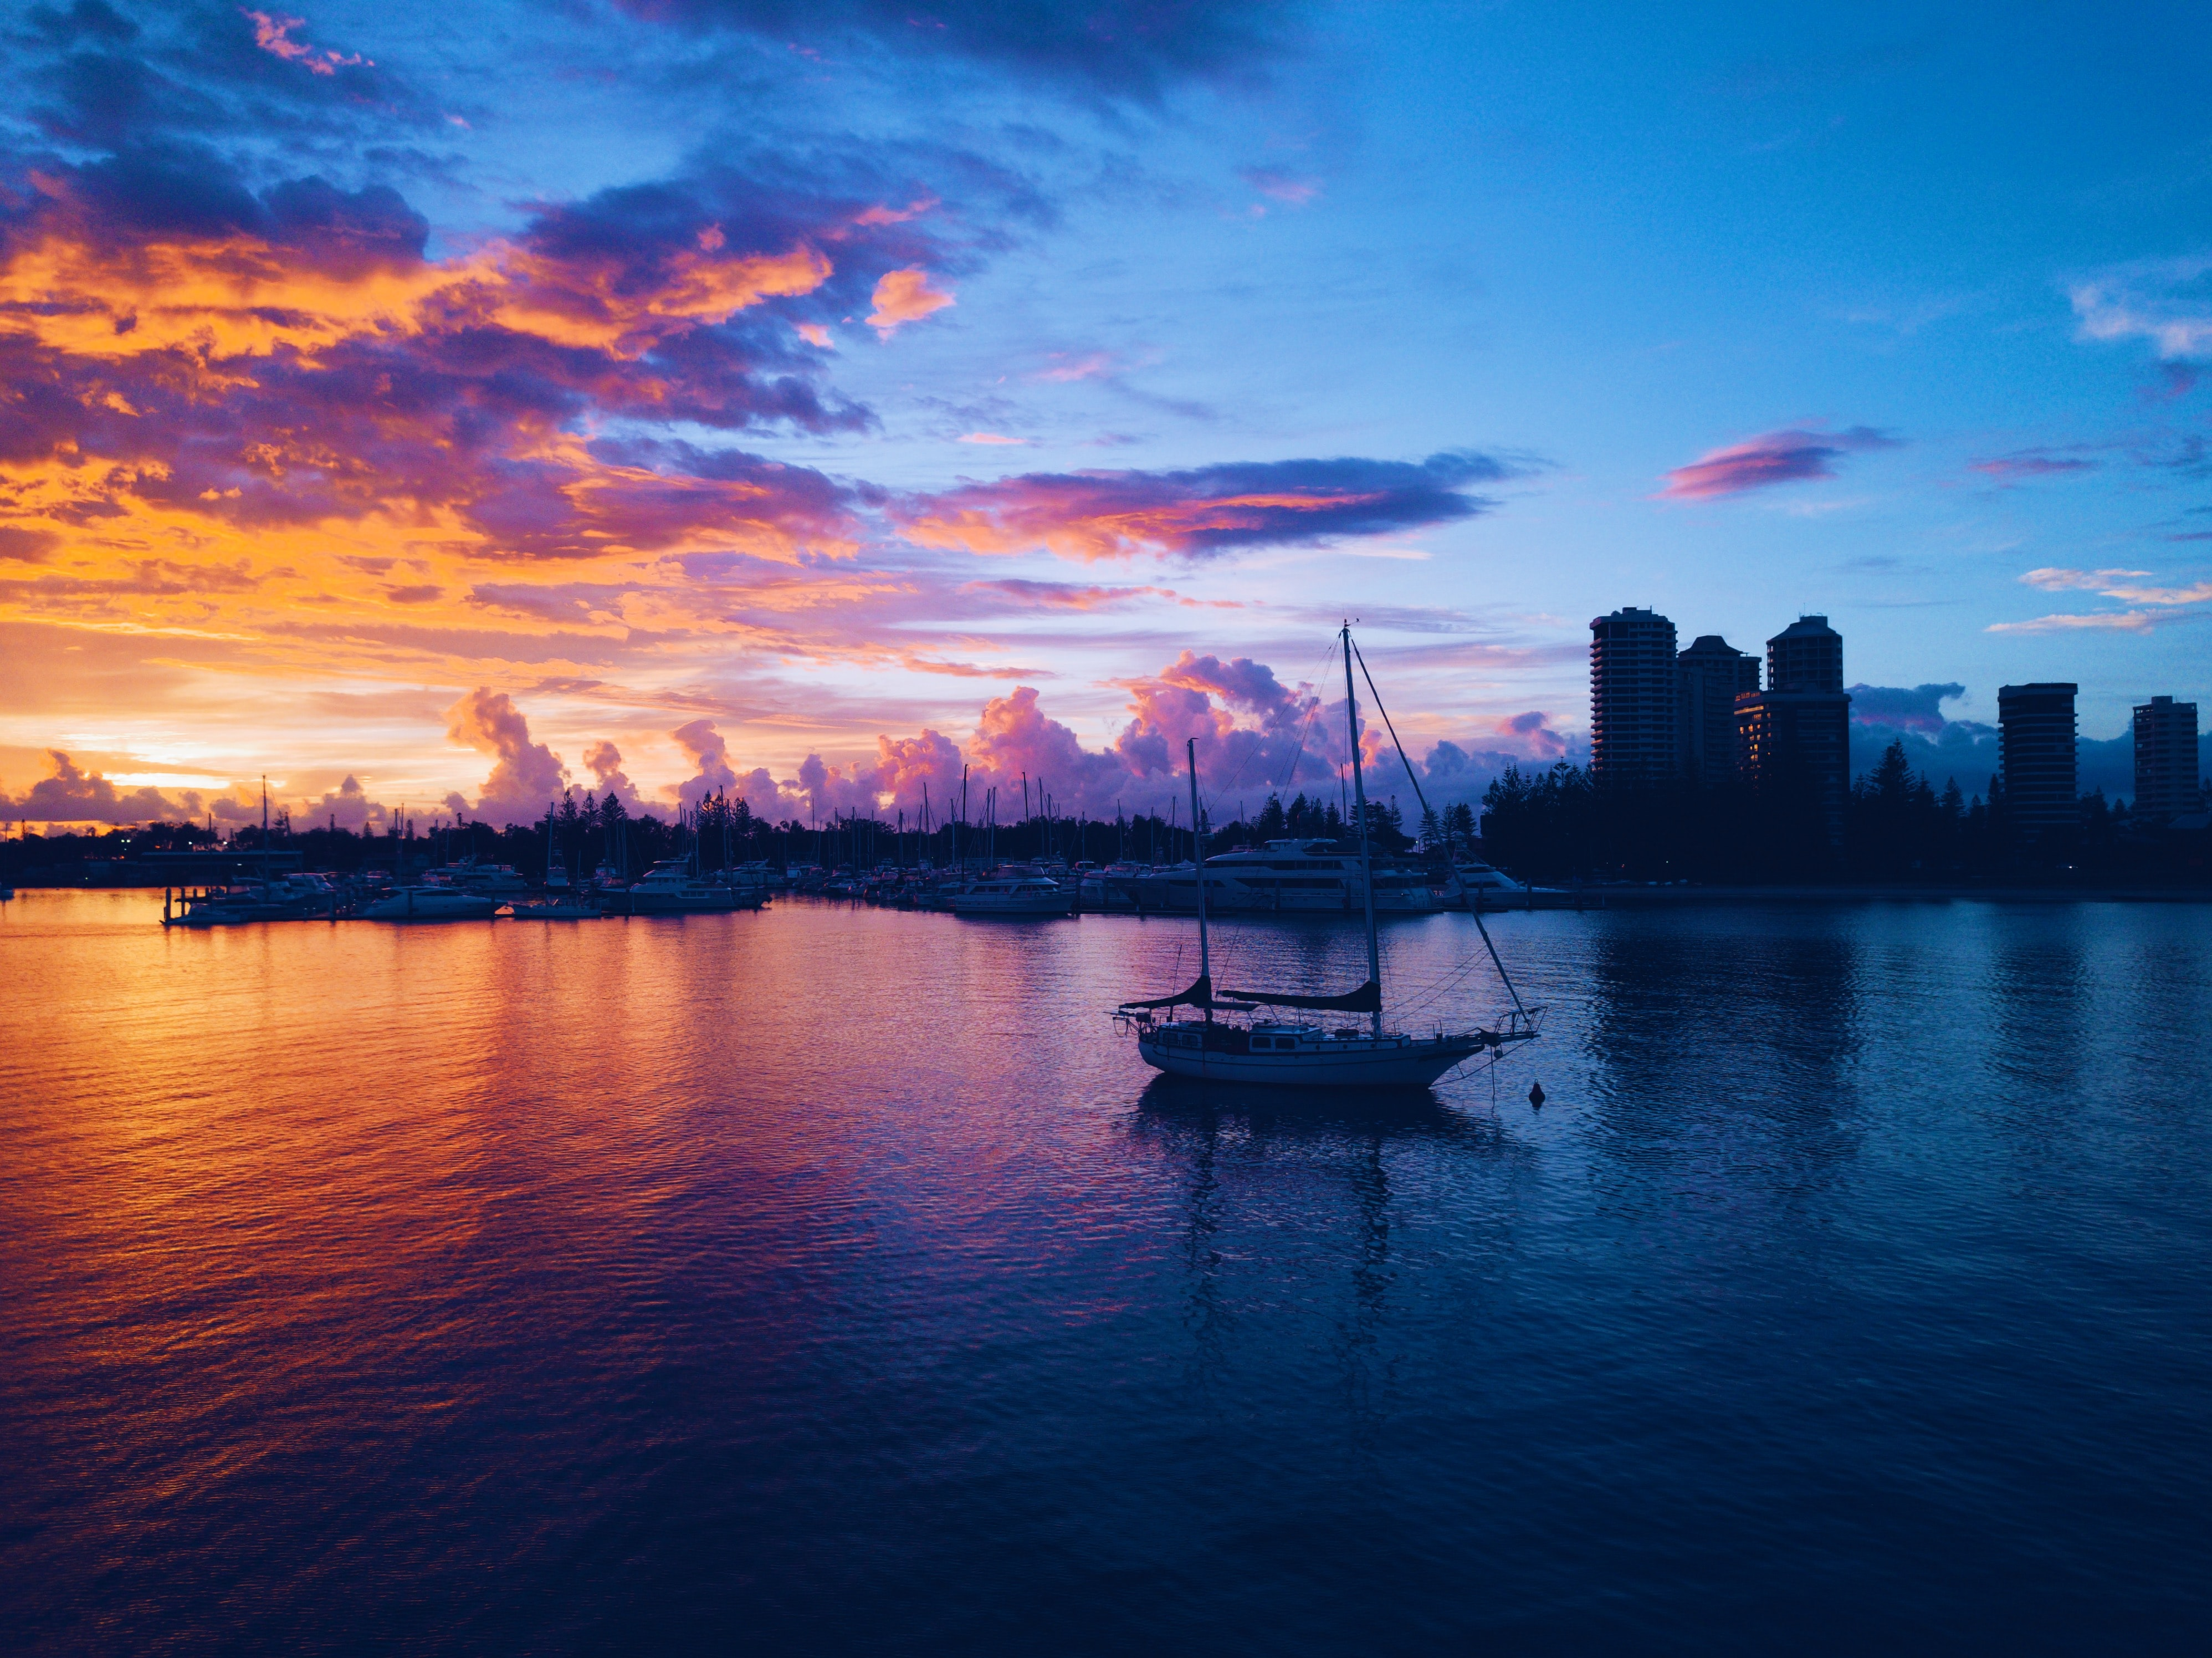 silhouette of boat on body of water near high rise buildings during golden hour